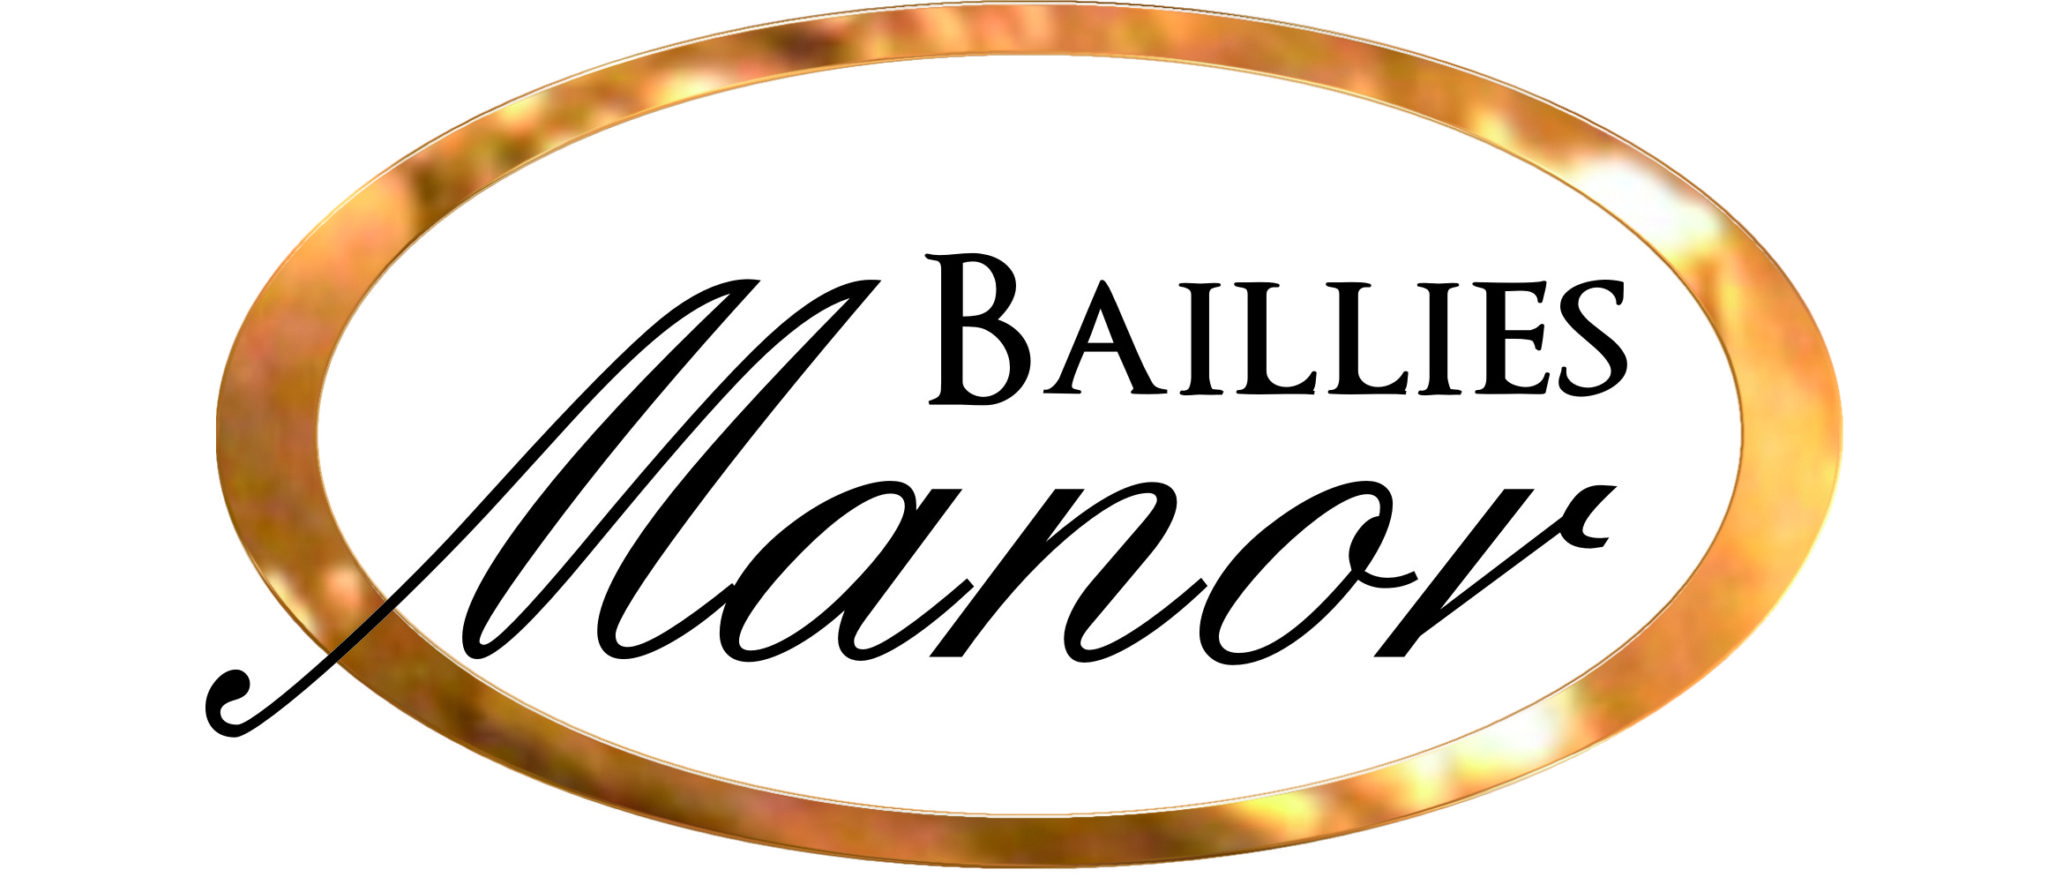 Baillie's Manor Guest House is an established hospitality landmark in Potchefstroom that offers convenience and comfort like no other. We specialise in hosting business tourists, as well as international athletes looking for affordable luxury accommodation in Potchefstroom.  If you are looking for a little serenity close to popular venues in Potchefstroom, come and book in at Baillie's Manor Guest House – you may never want to leave!  Some our our facilities include:      Swimming Pool     Lunch & dinner on request (Banting option available)     Wi-Fi Hotspot     Gym     Labyrinth     Access Controlled Parking